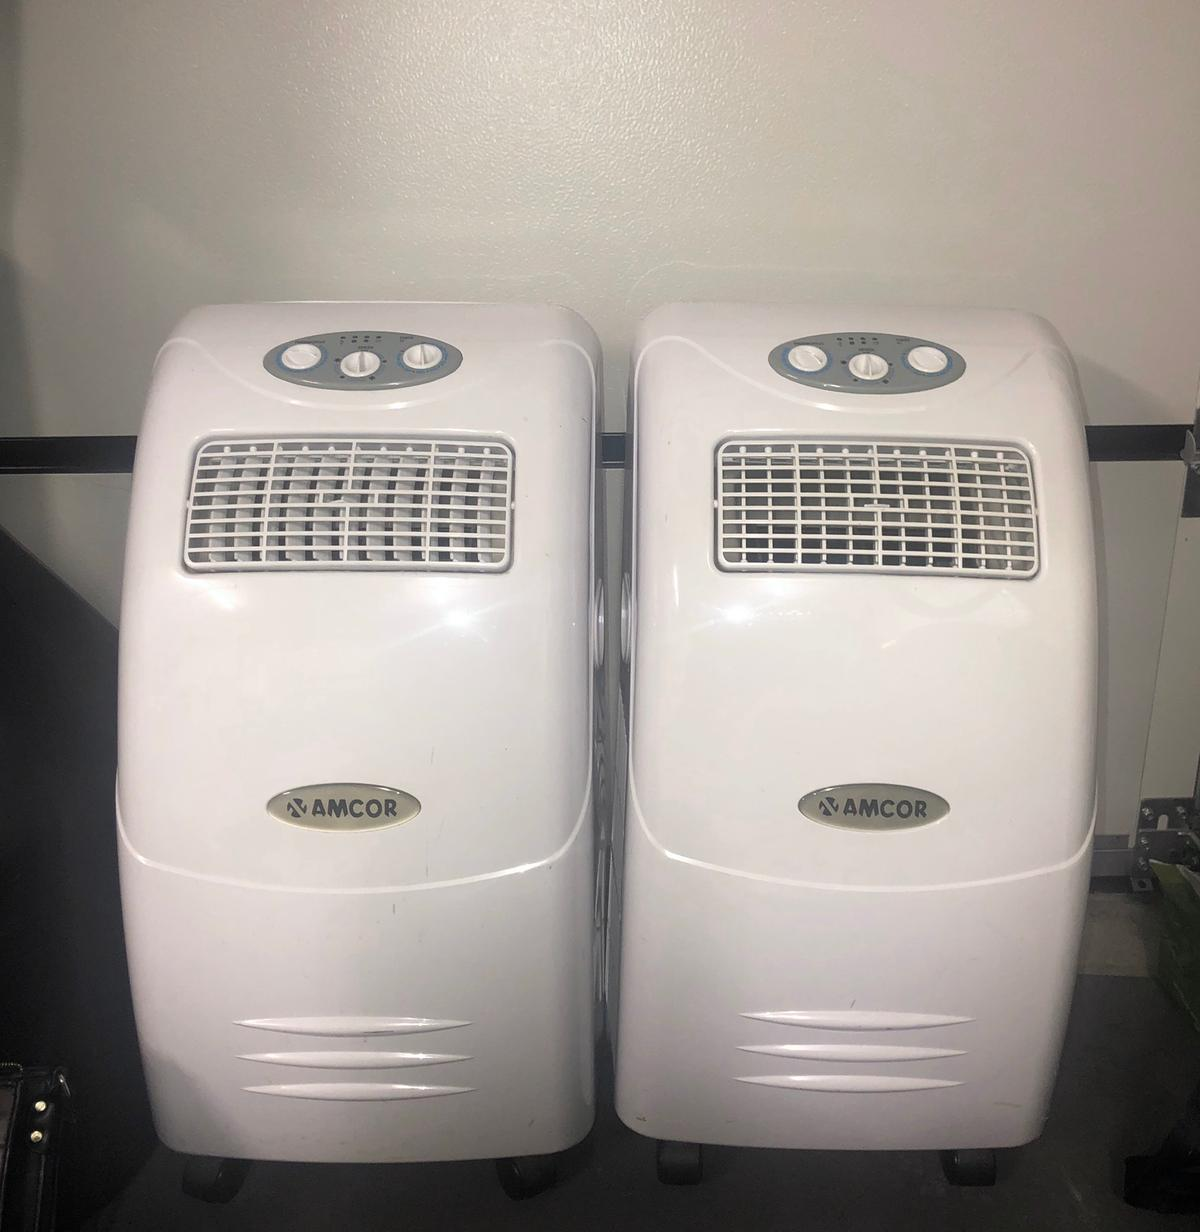 2 Amcor Air Conditioning Units willing to sell together for £400 or separately for £230 each. In excellent condition, they work perfectly. No longer need as we have air conditioning installed now. Originally bought both for £1200. Please note the cooling capacities on both the items are different. Comes with all original accessories and instruction manual. CASH payment only and pick up located in Surrey